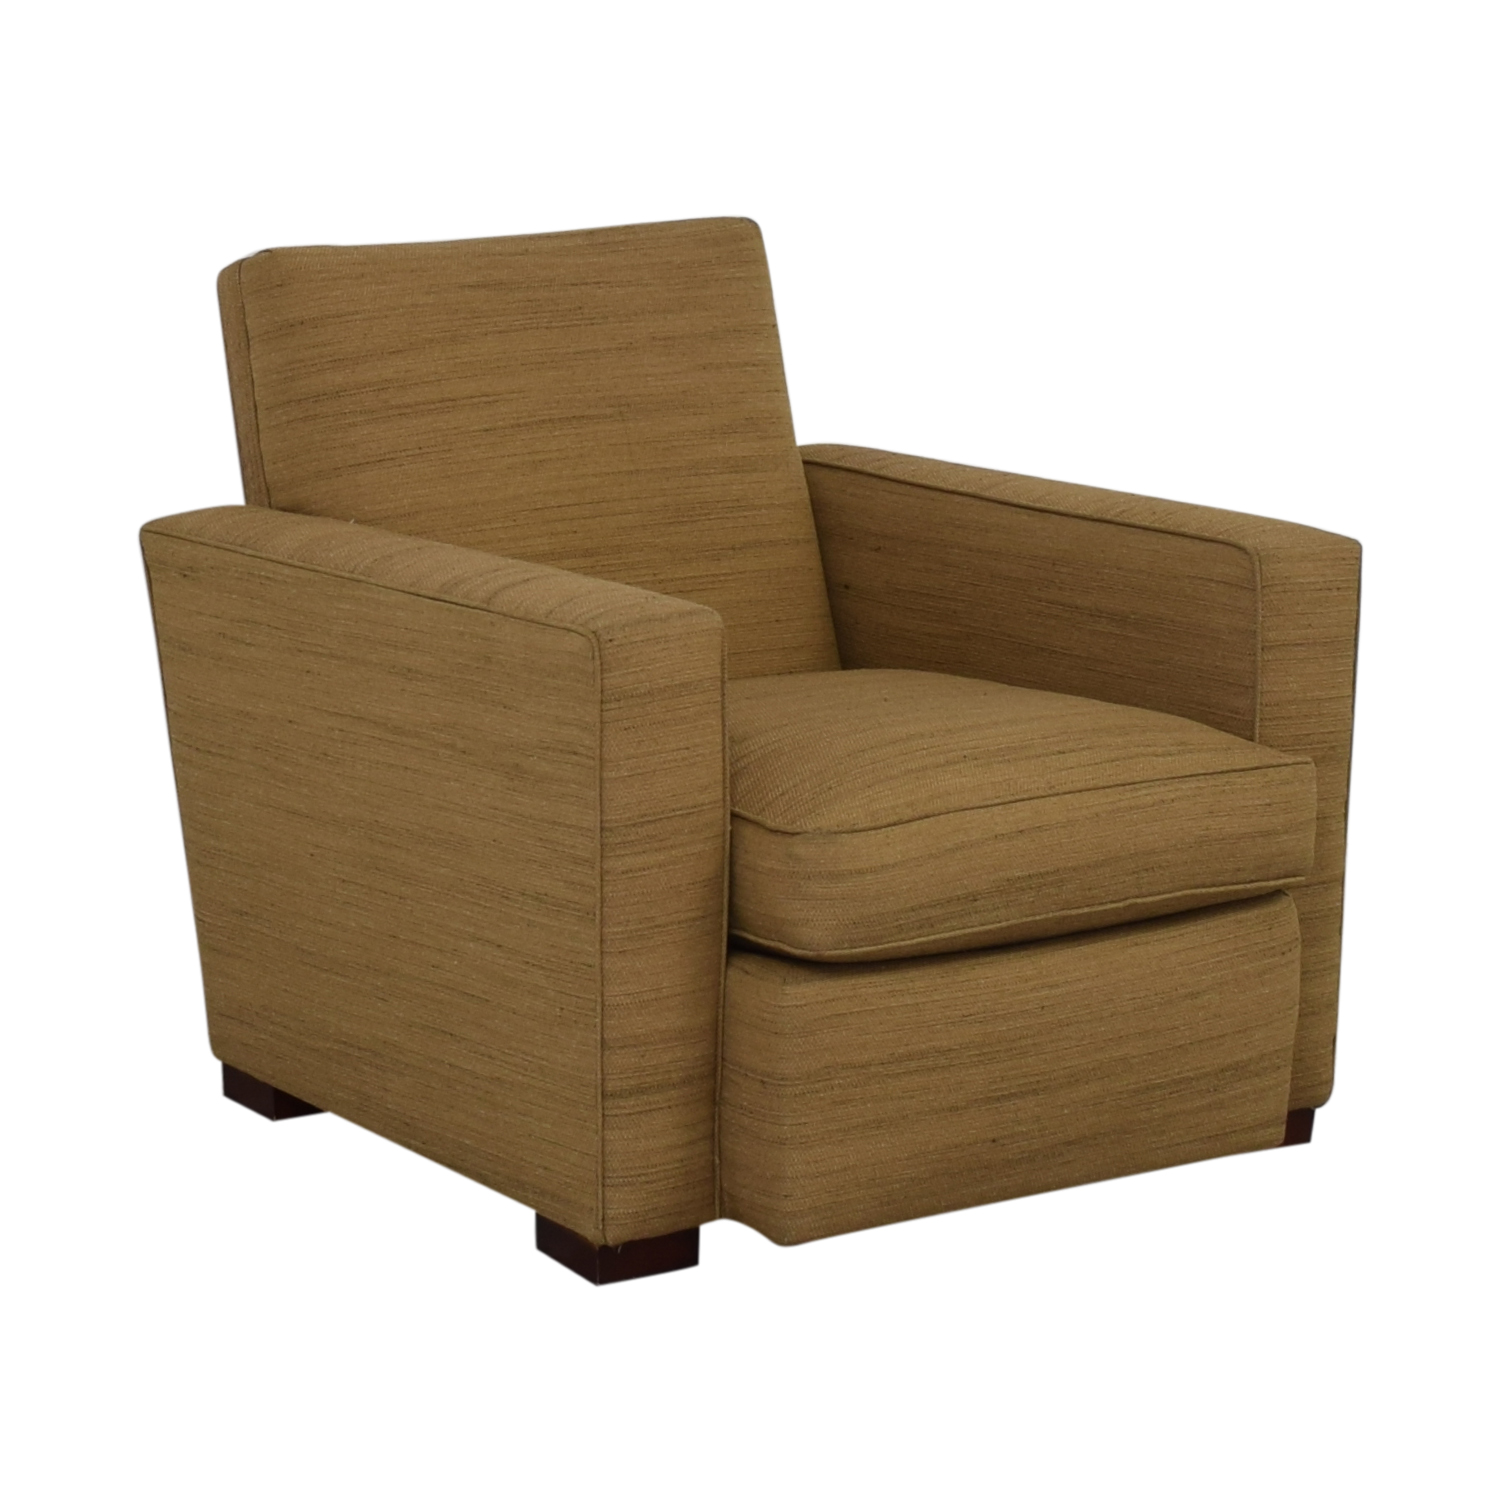 Hickory Chair Hickory Chair Accent Chair on sale